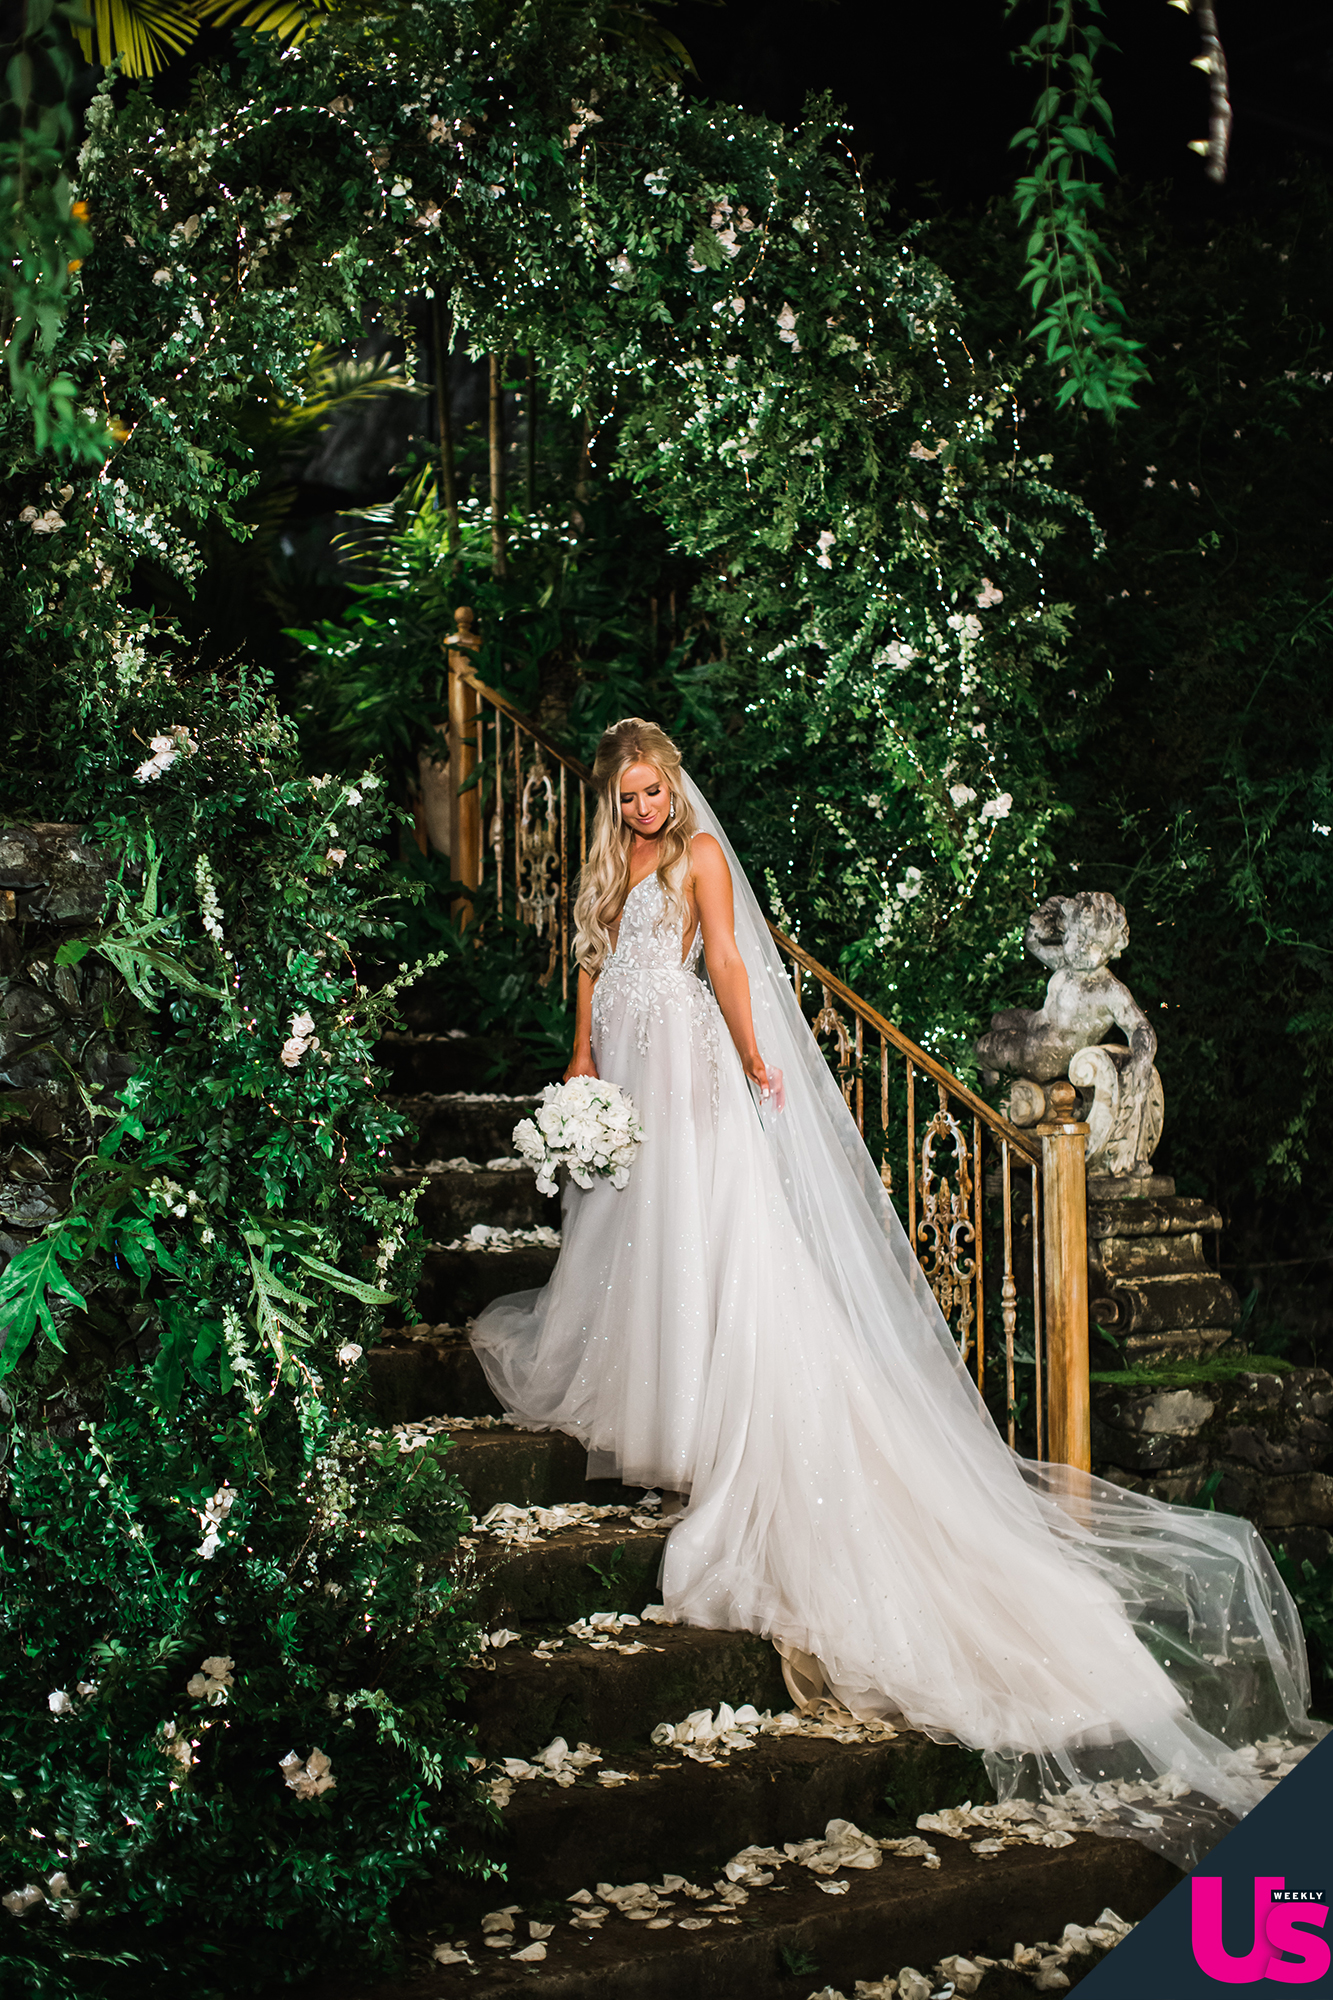 """Arie-Luyendyk-Jr. -and-Lauren-Burnham-Wedding - The floral arrangements were created by Mandy Grace Designs and """"Lauren's bouquet feature a stunning large all-white collection of ranunculus and specialty garden roses wrapped with ivory silk ribbon,"""" Hosaki told Us ."""